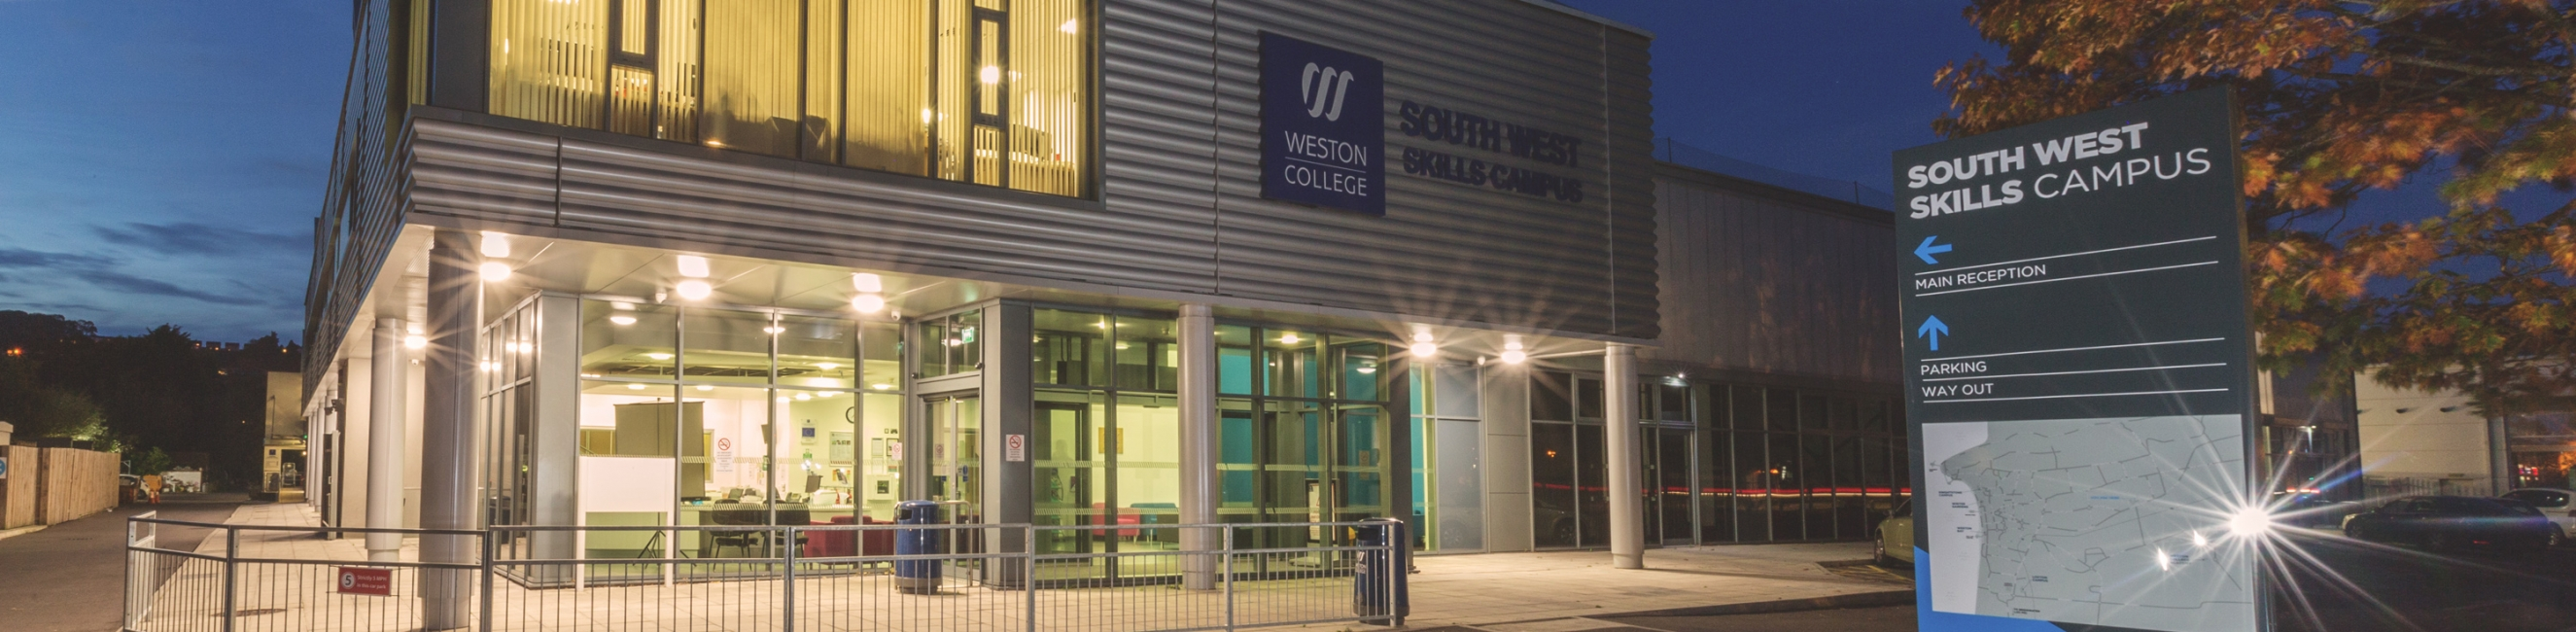 South West Skills Campus